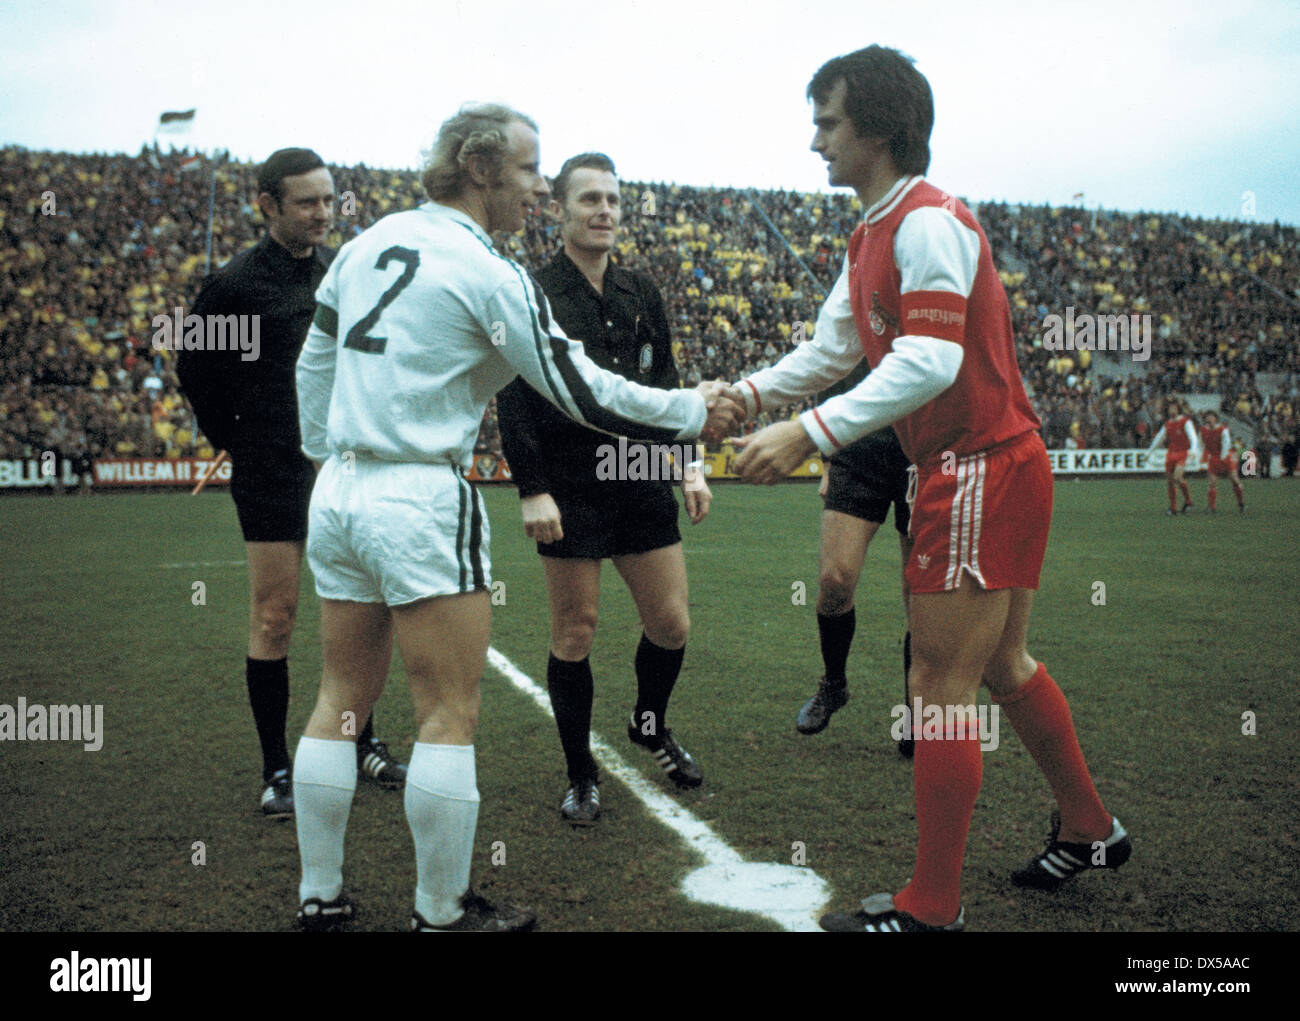 football, Bundesliga, 1974/1975, Stadium am Boekelberg, Borussia Moenchengladbach versus 1. FC Cologne 1:1, welcome, team captains Berti Vogts (MG) left and Wolfgang Overath (FC), behind referee Guenter Linn and assistants - Stock Image